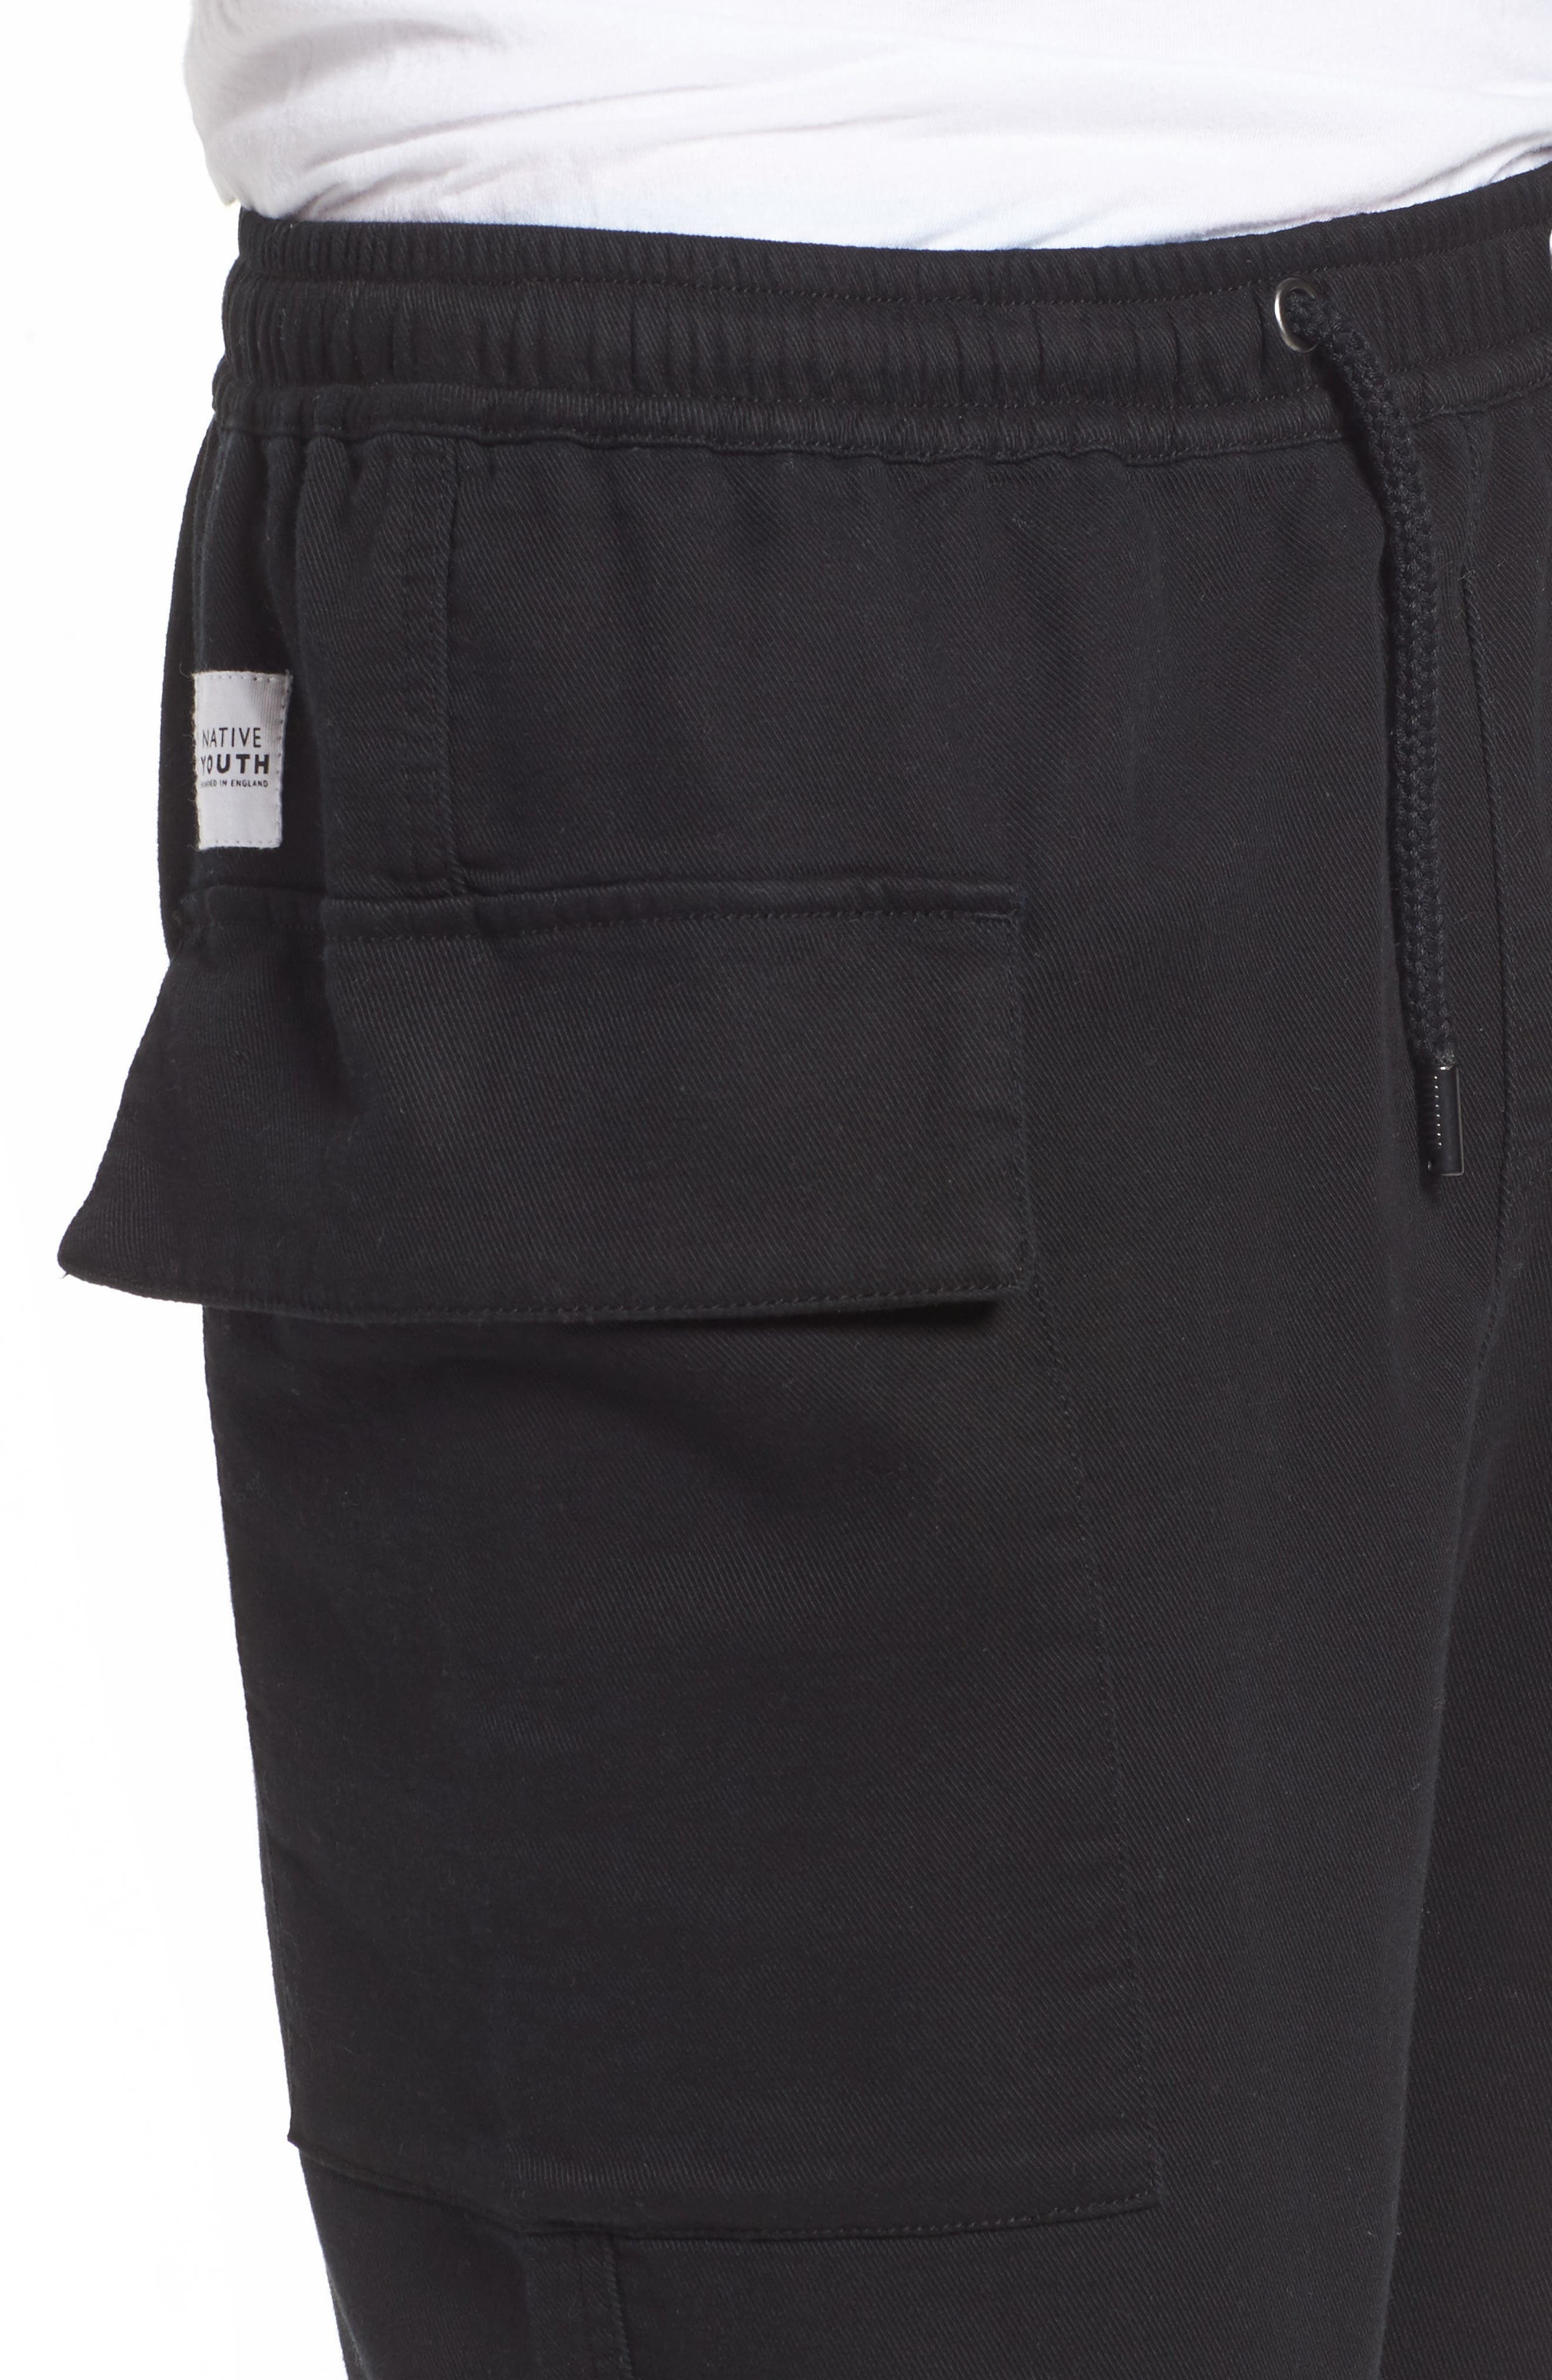 Shay Cargo Pants,                             Alternate thumbnail 4, color,                             Black